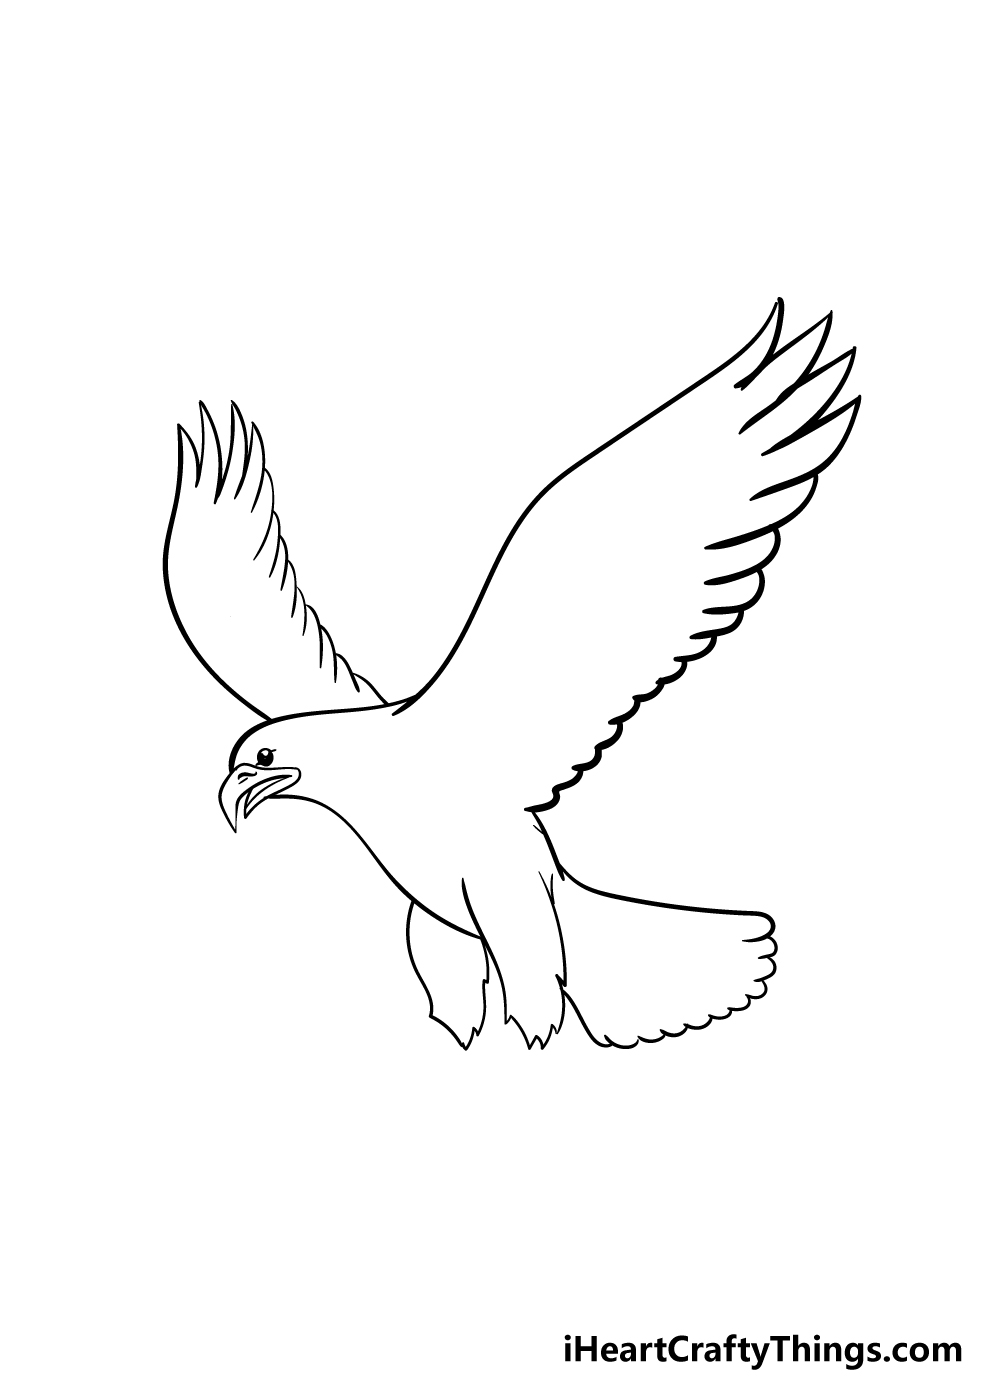 eagle drawing step 4